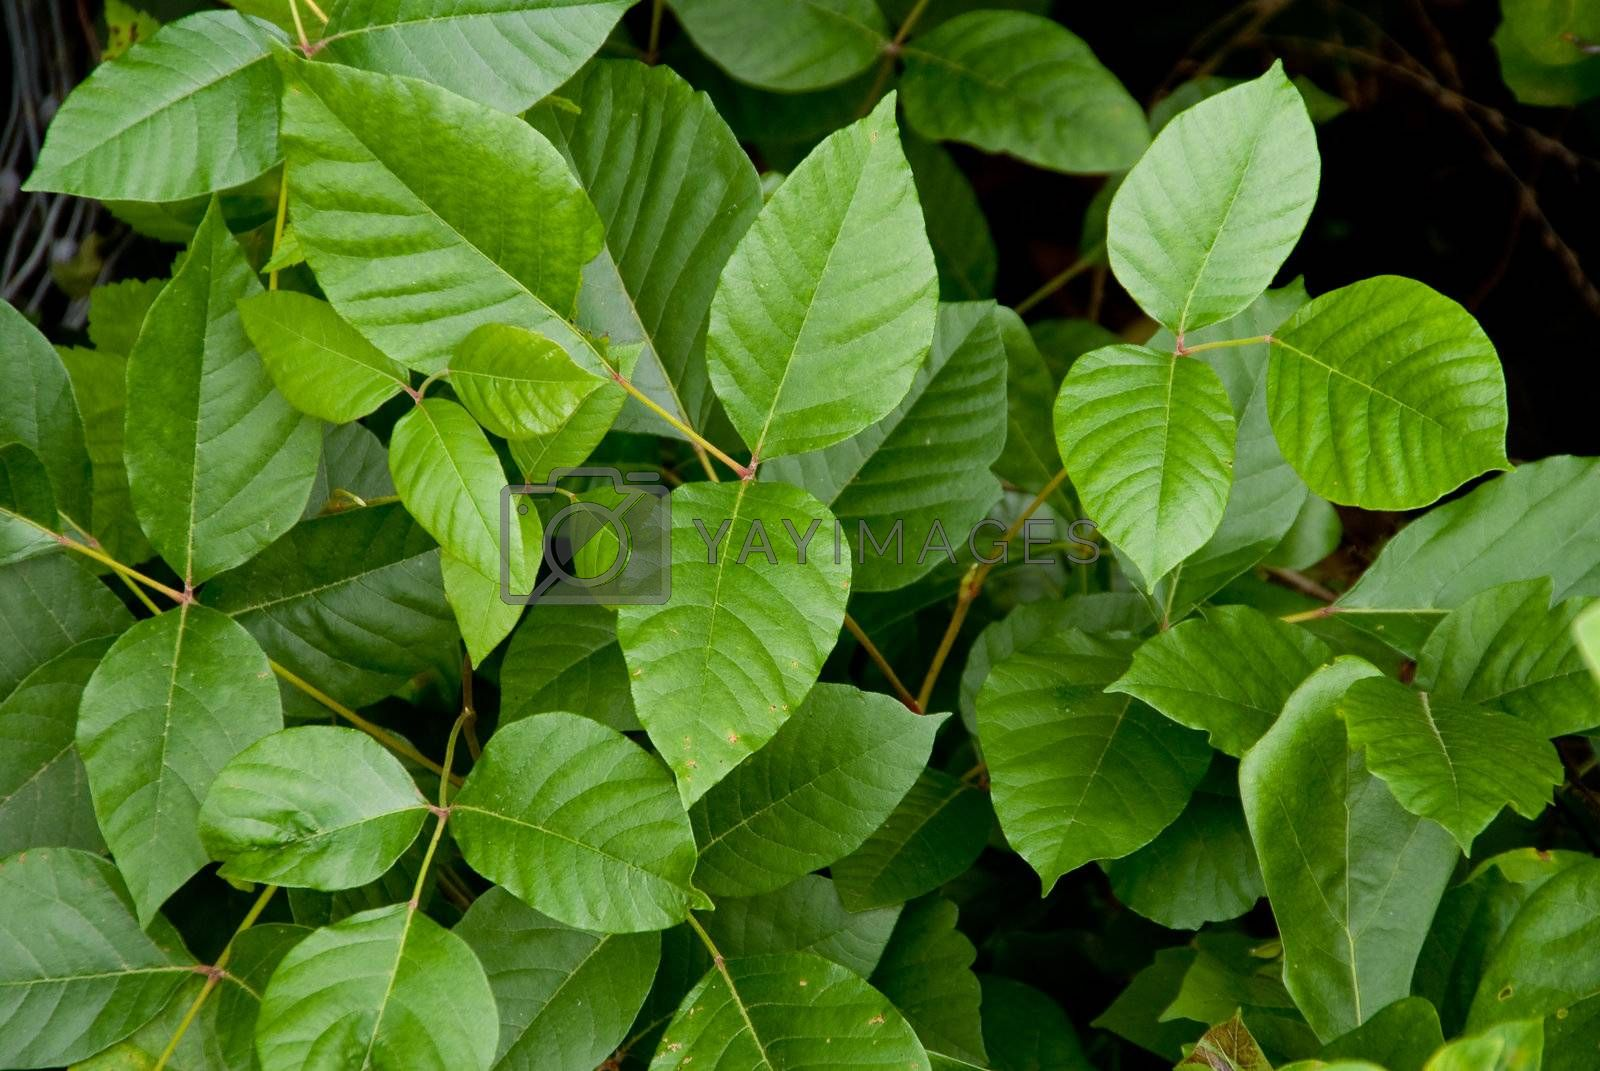 The Poison Ivy plant causes rashes, hives and other allergic reactions.